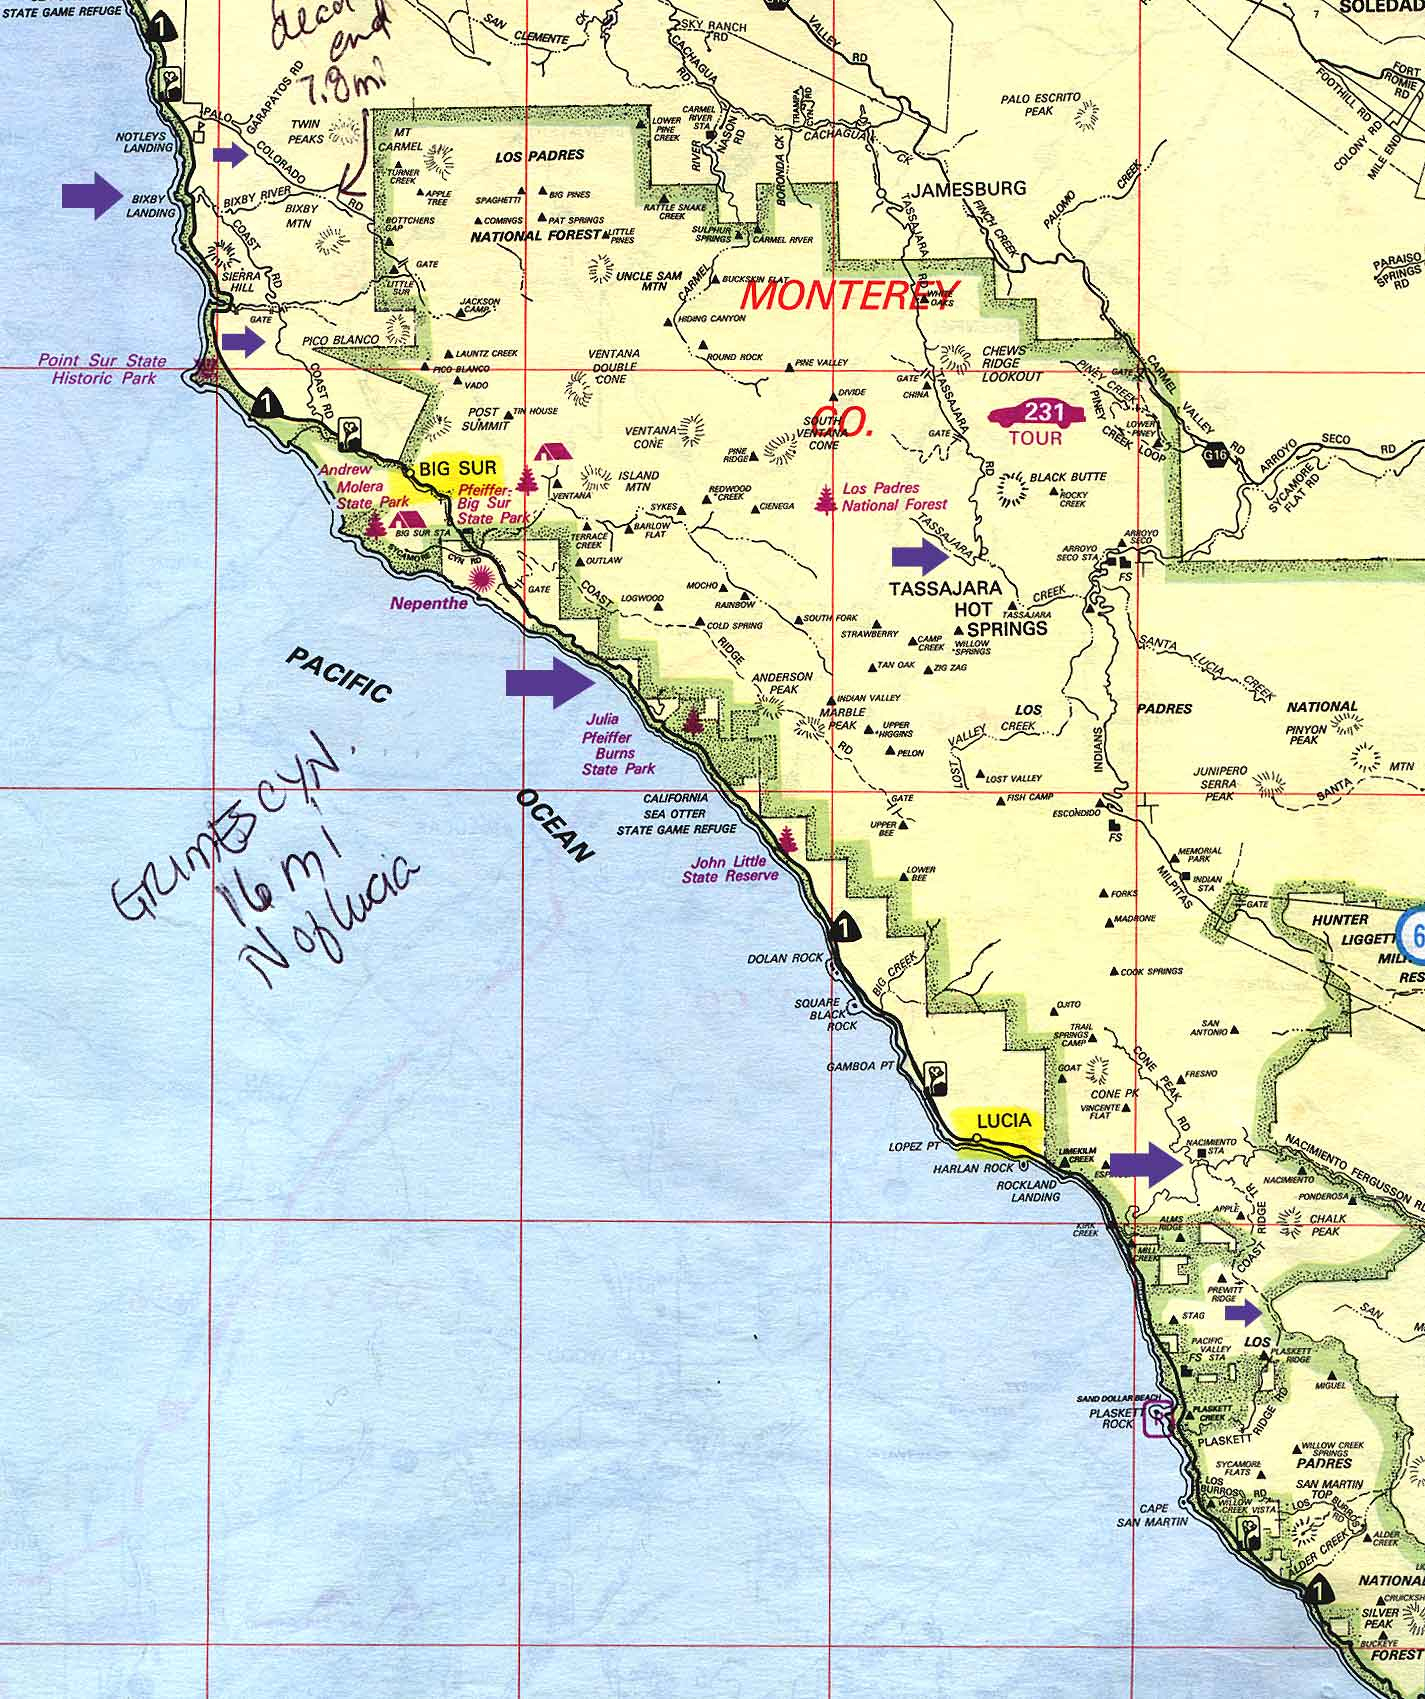 Free Camping Socal Los Padres National Forest Mt Pinos For - Southern California Campgrounds Map